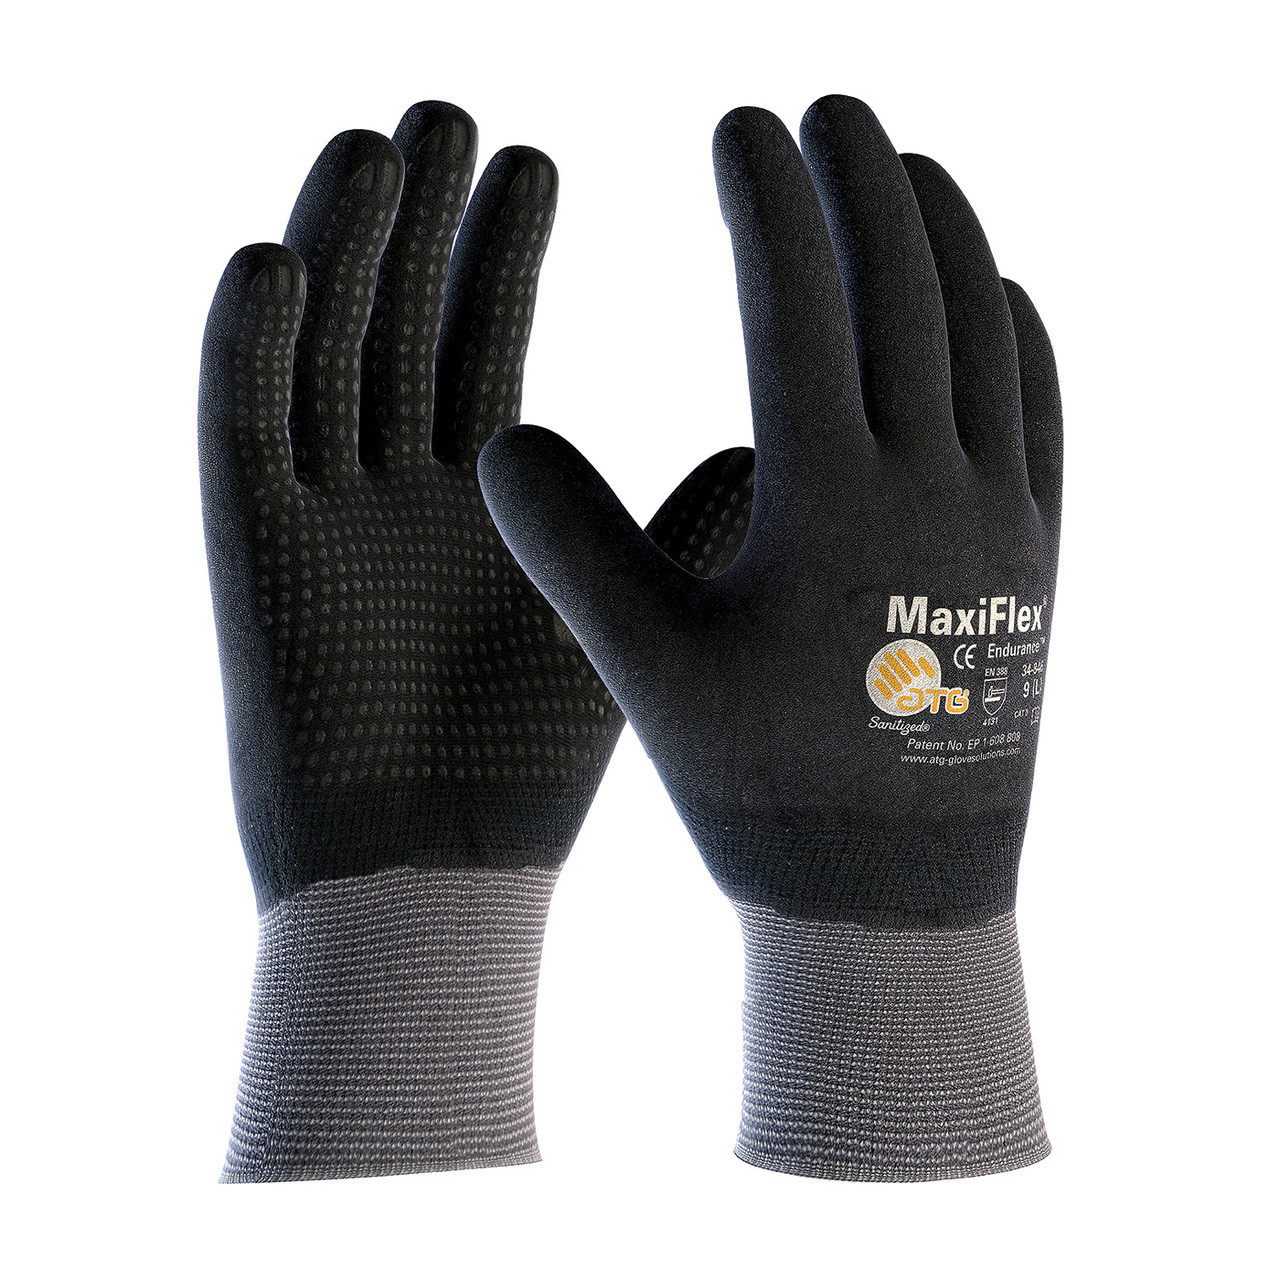 MaxiFlex 34-846 Gloves with Nitrile Micro-Foam Grip on Full Hand(Pair)